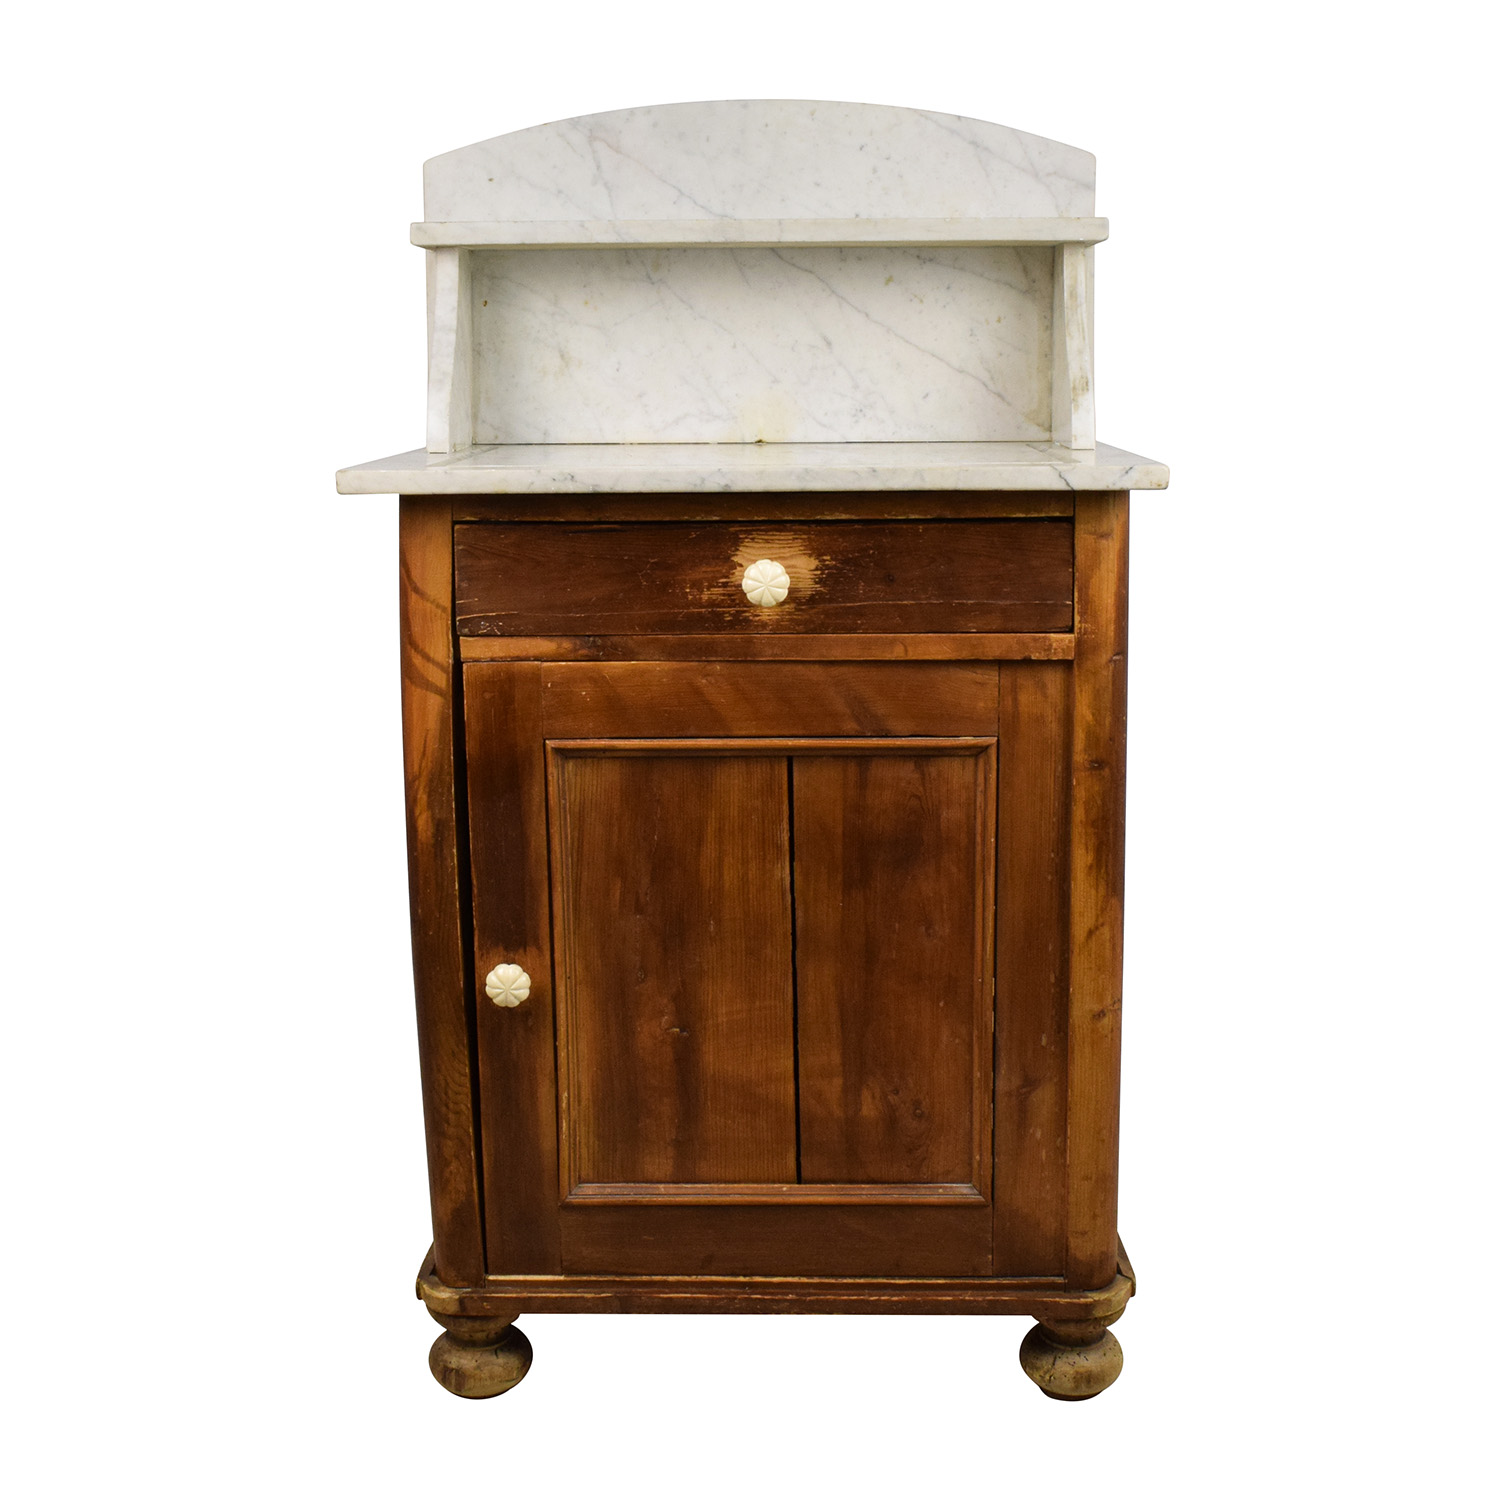 Evergreen Evergreen Rustic Marble Topped Storage Cabinet second hand